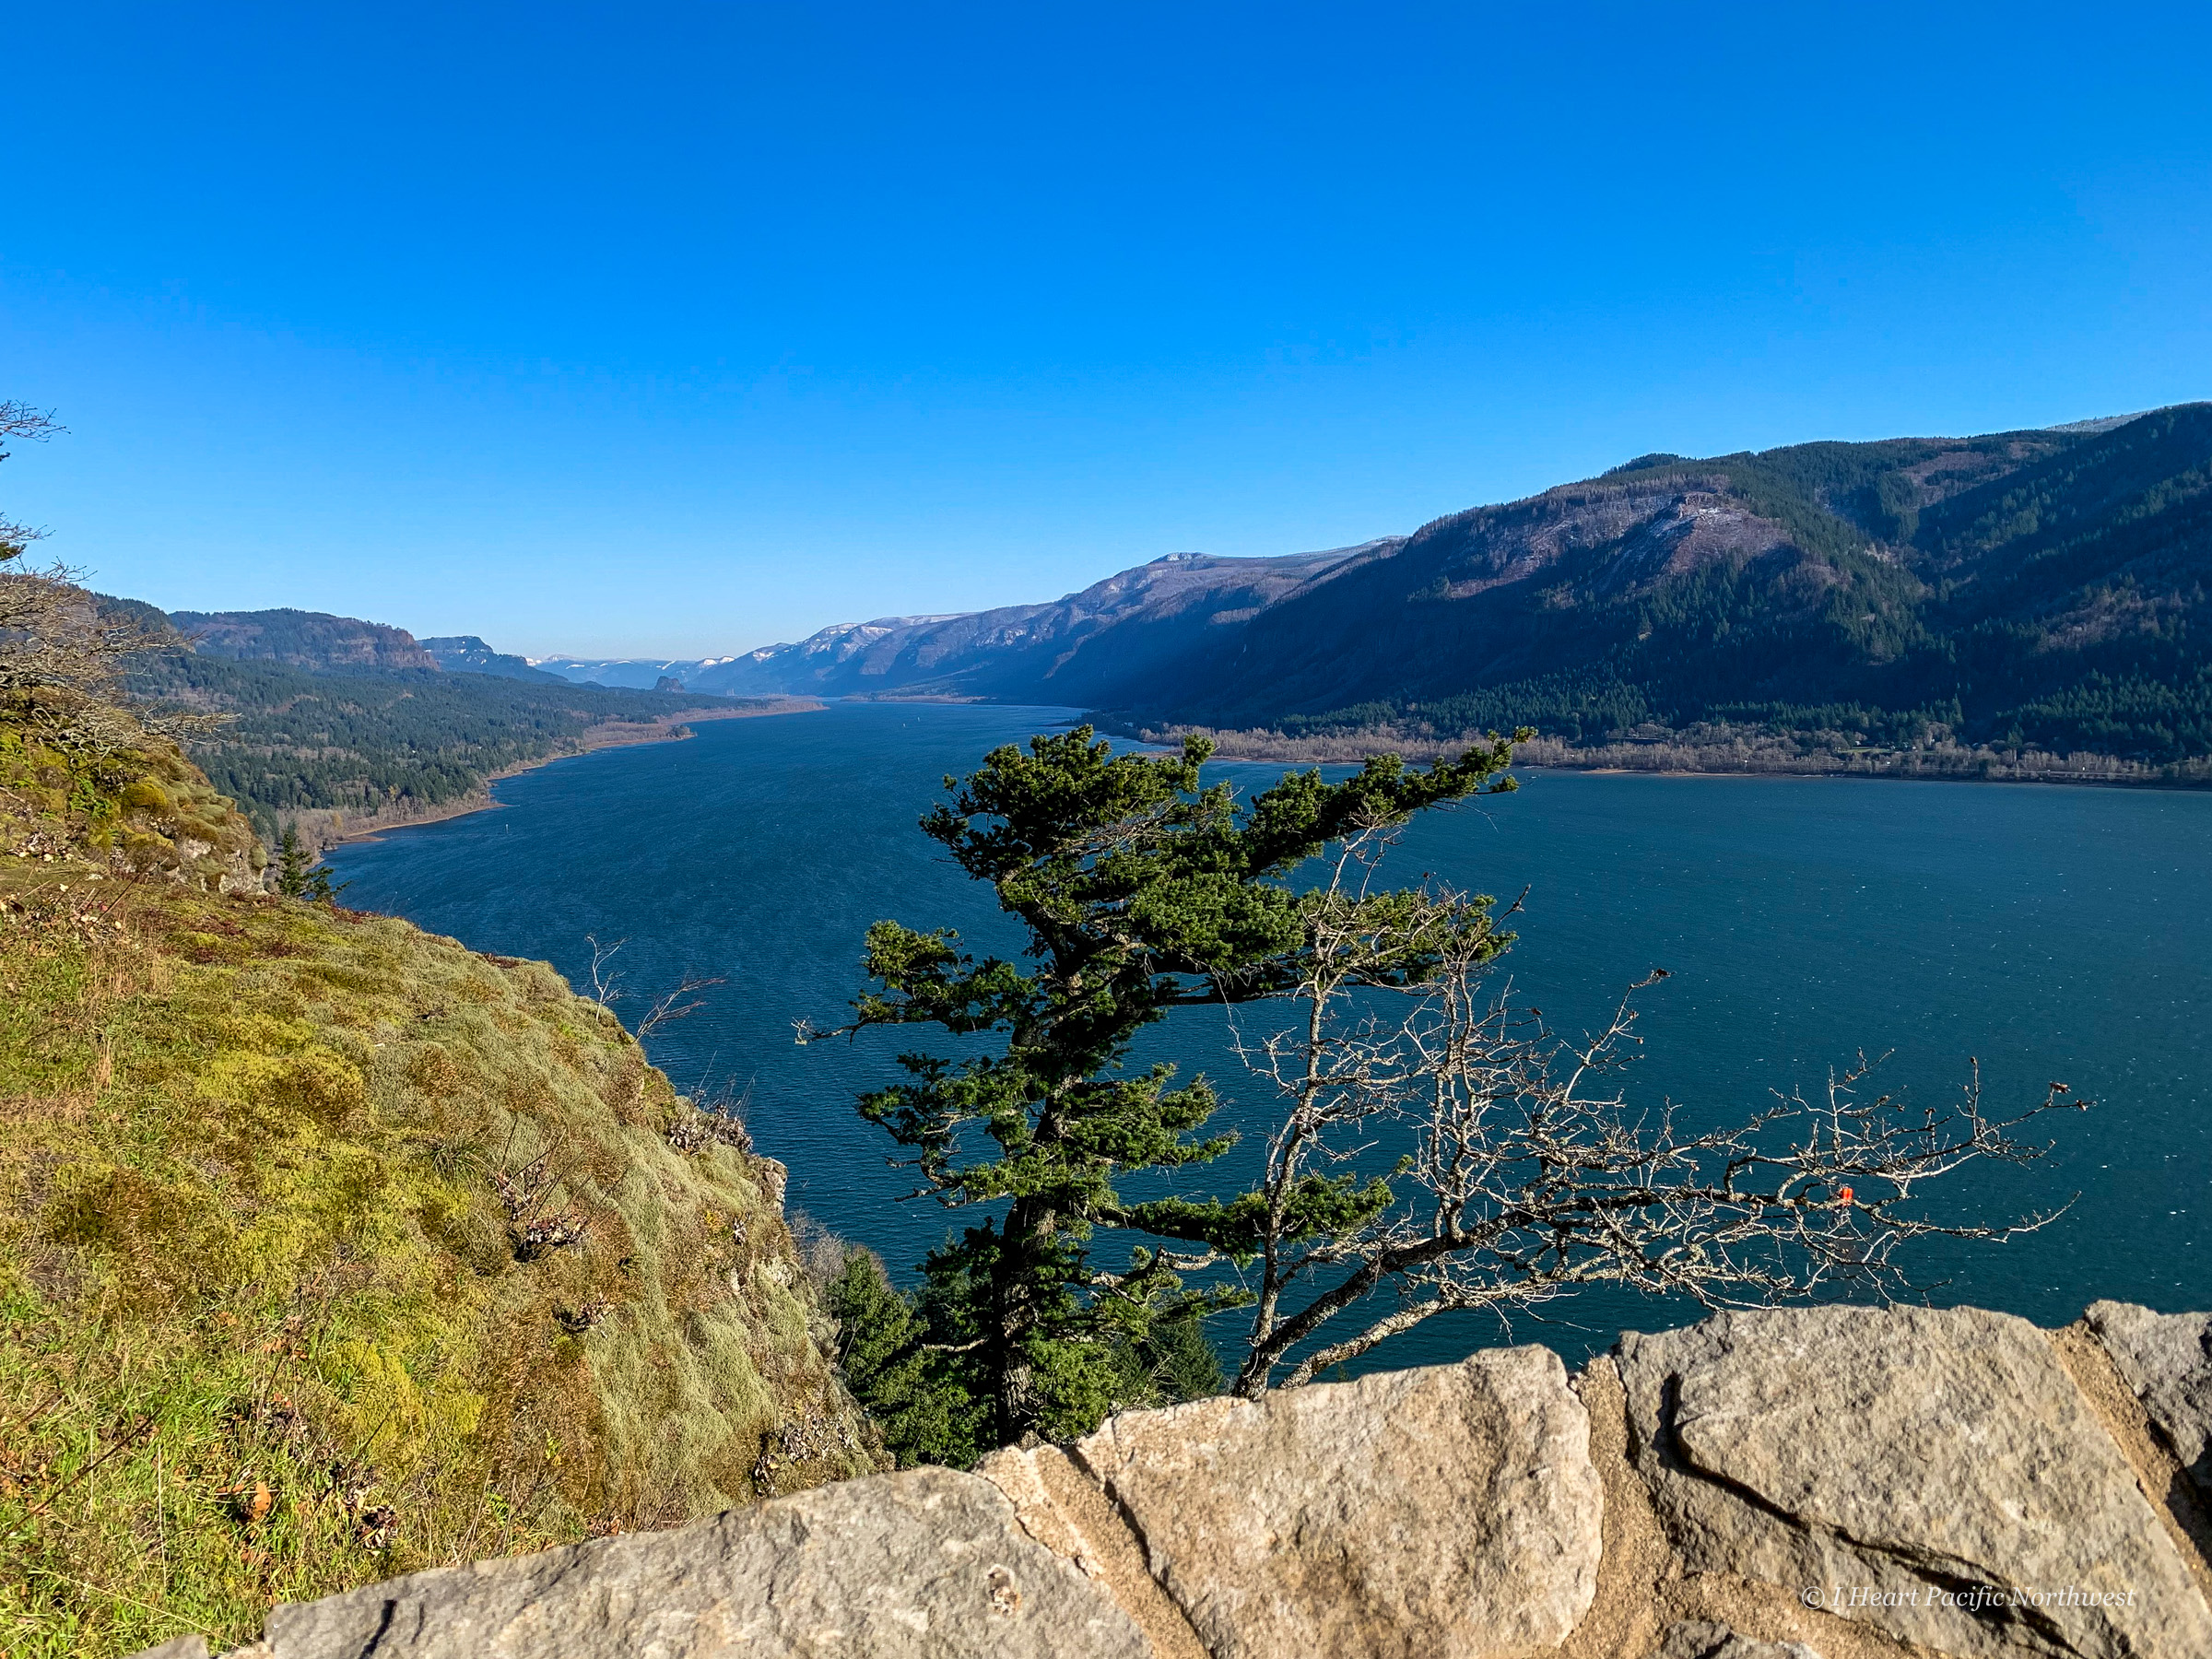 Cape Horn loop hike